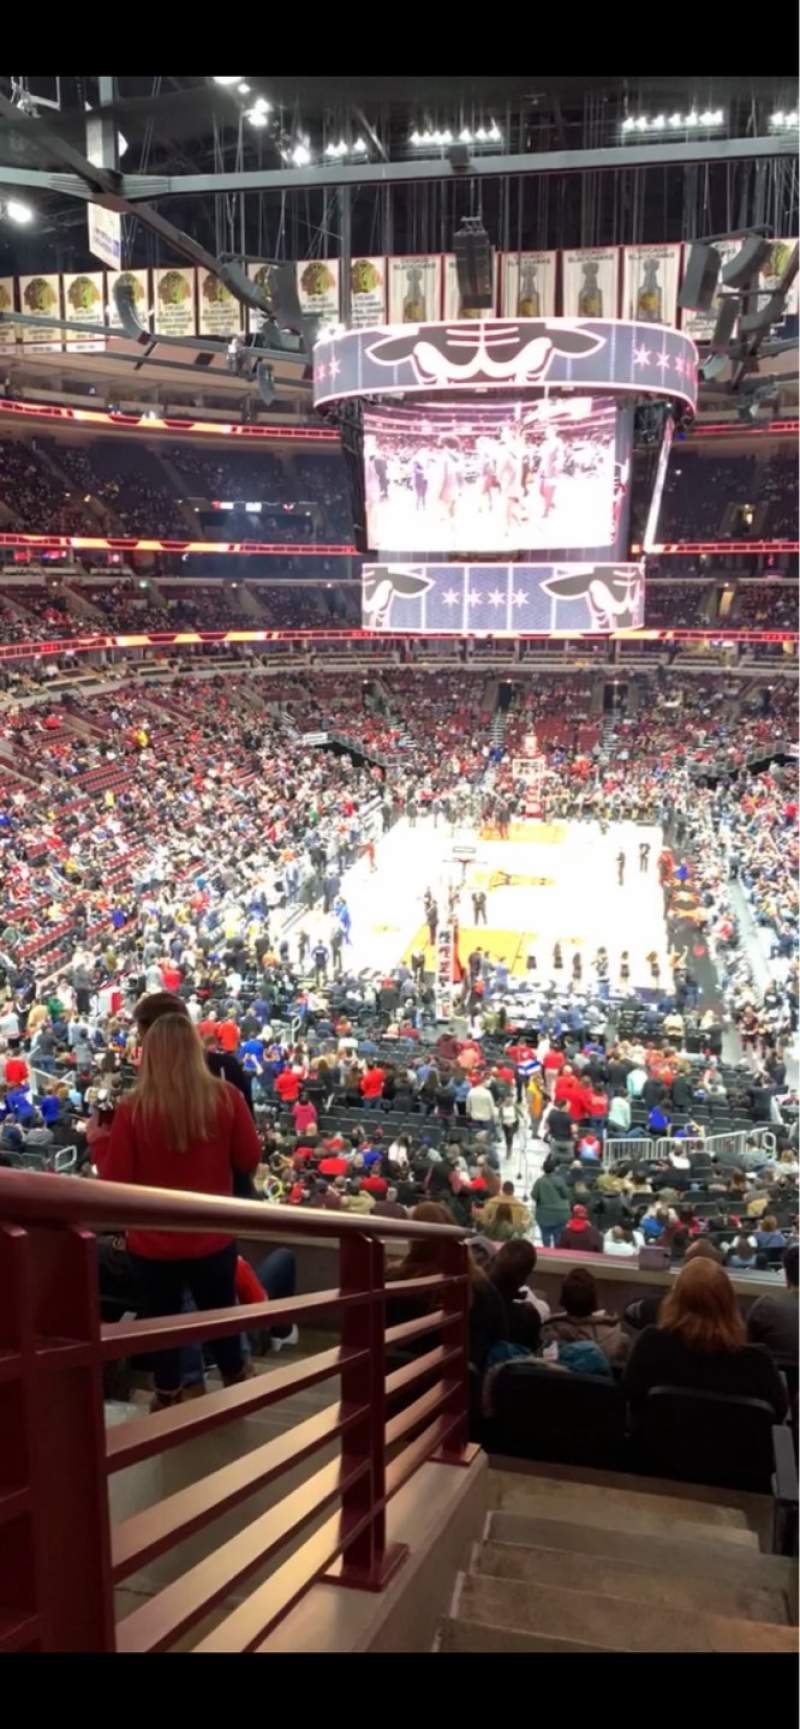 Seating view for United Center Section 225 Row 8 Seat 1